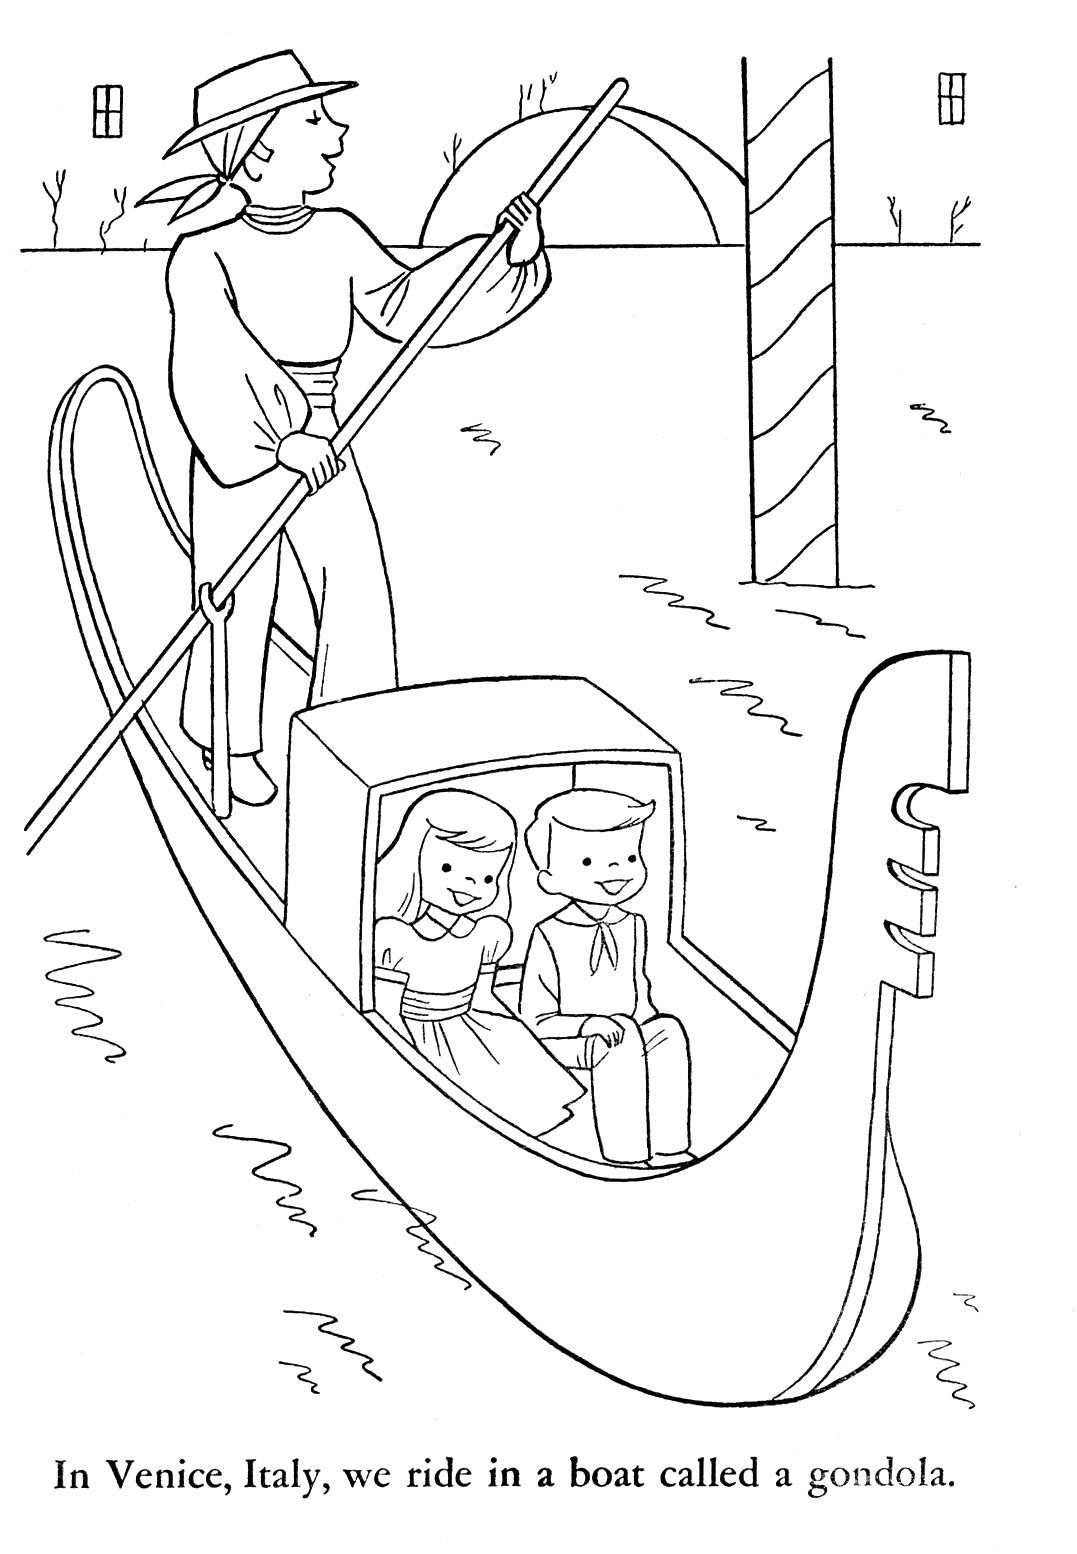 Italy Coloring Pages For Children